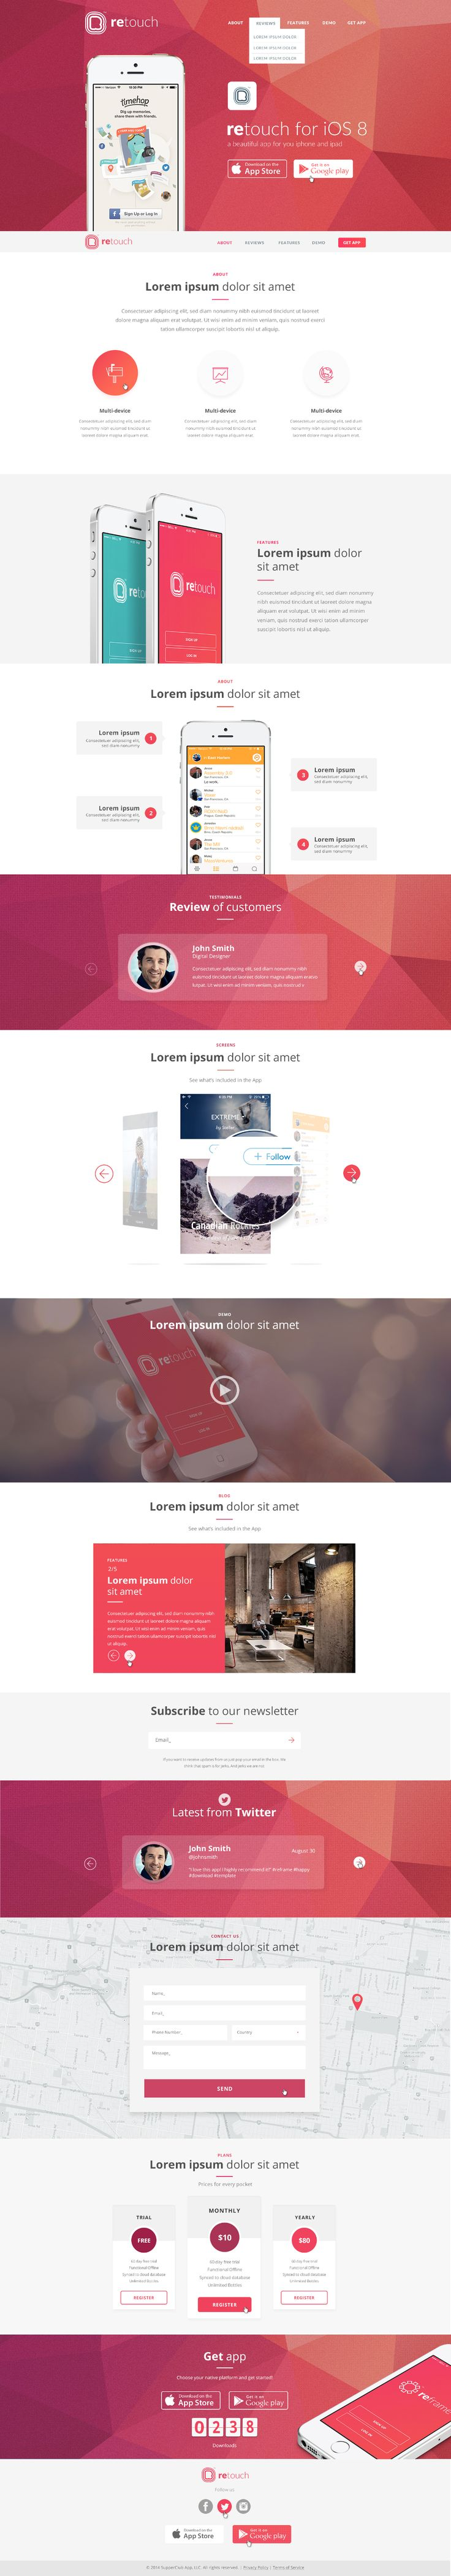 ReTouch - App WordPress Theme on Behance